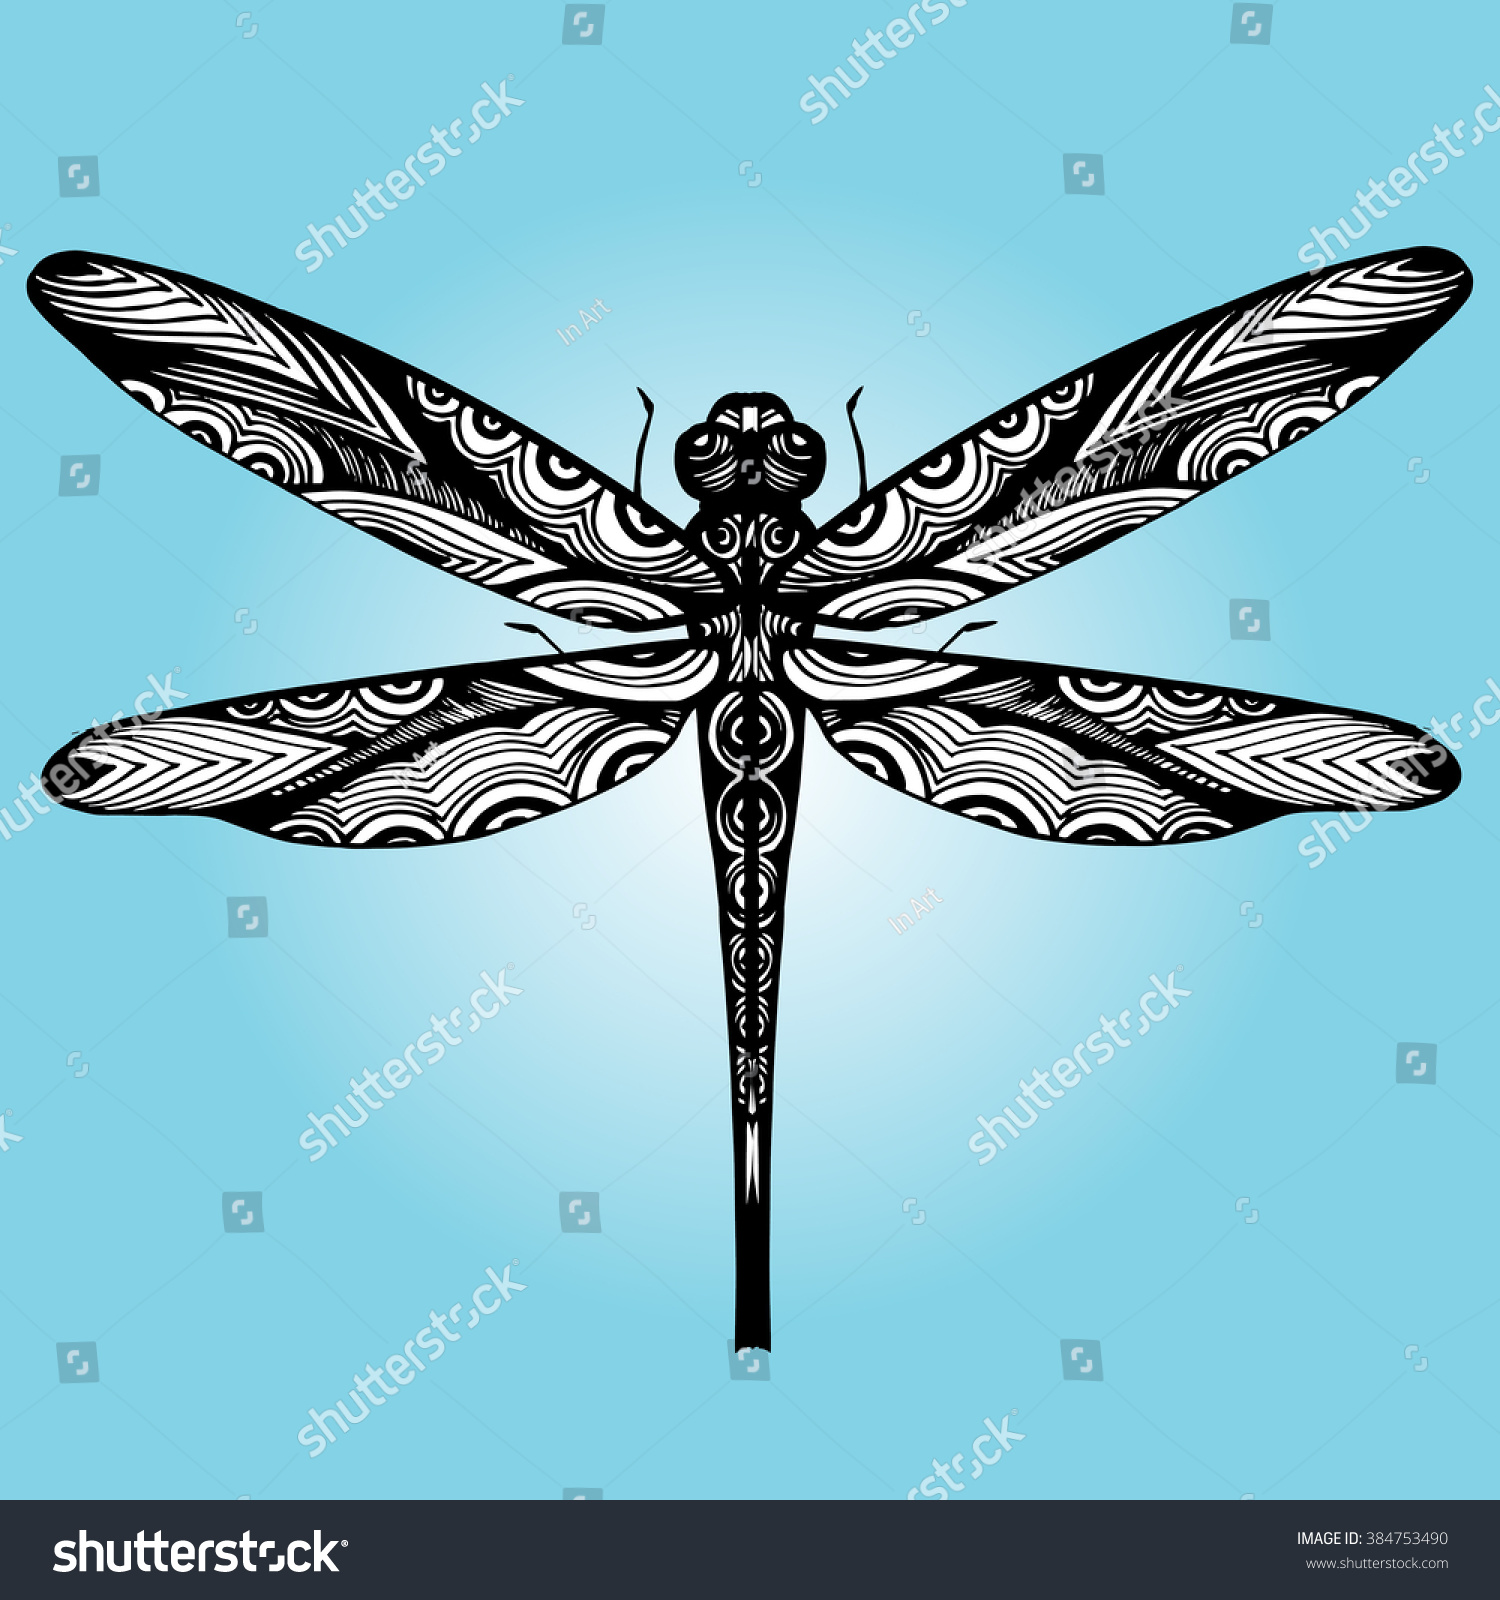 Dragonfly Tattoo Line Drawing : Dragonfly set line art tattoo black stock vector